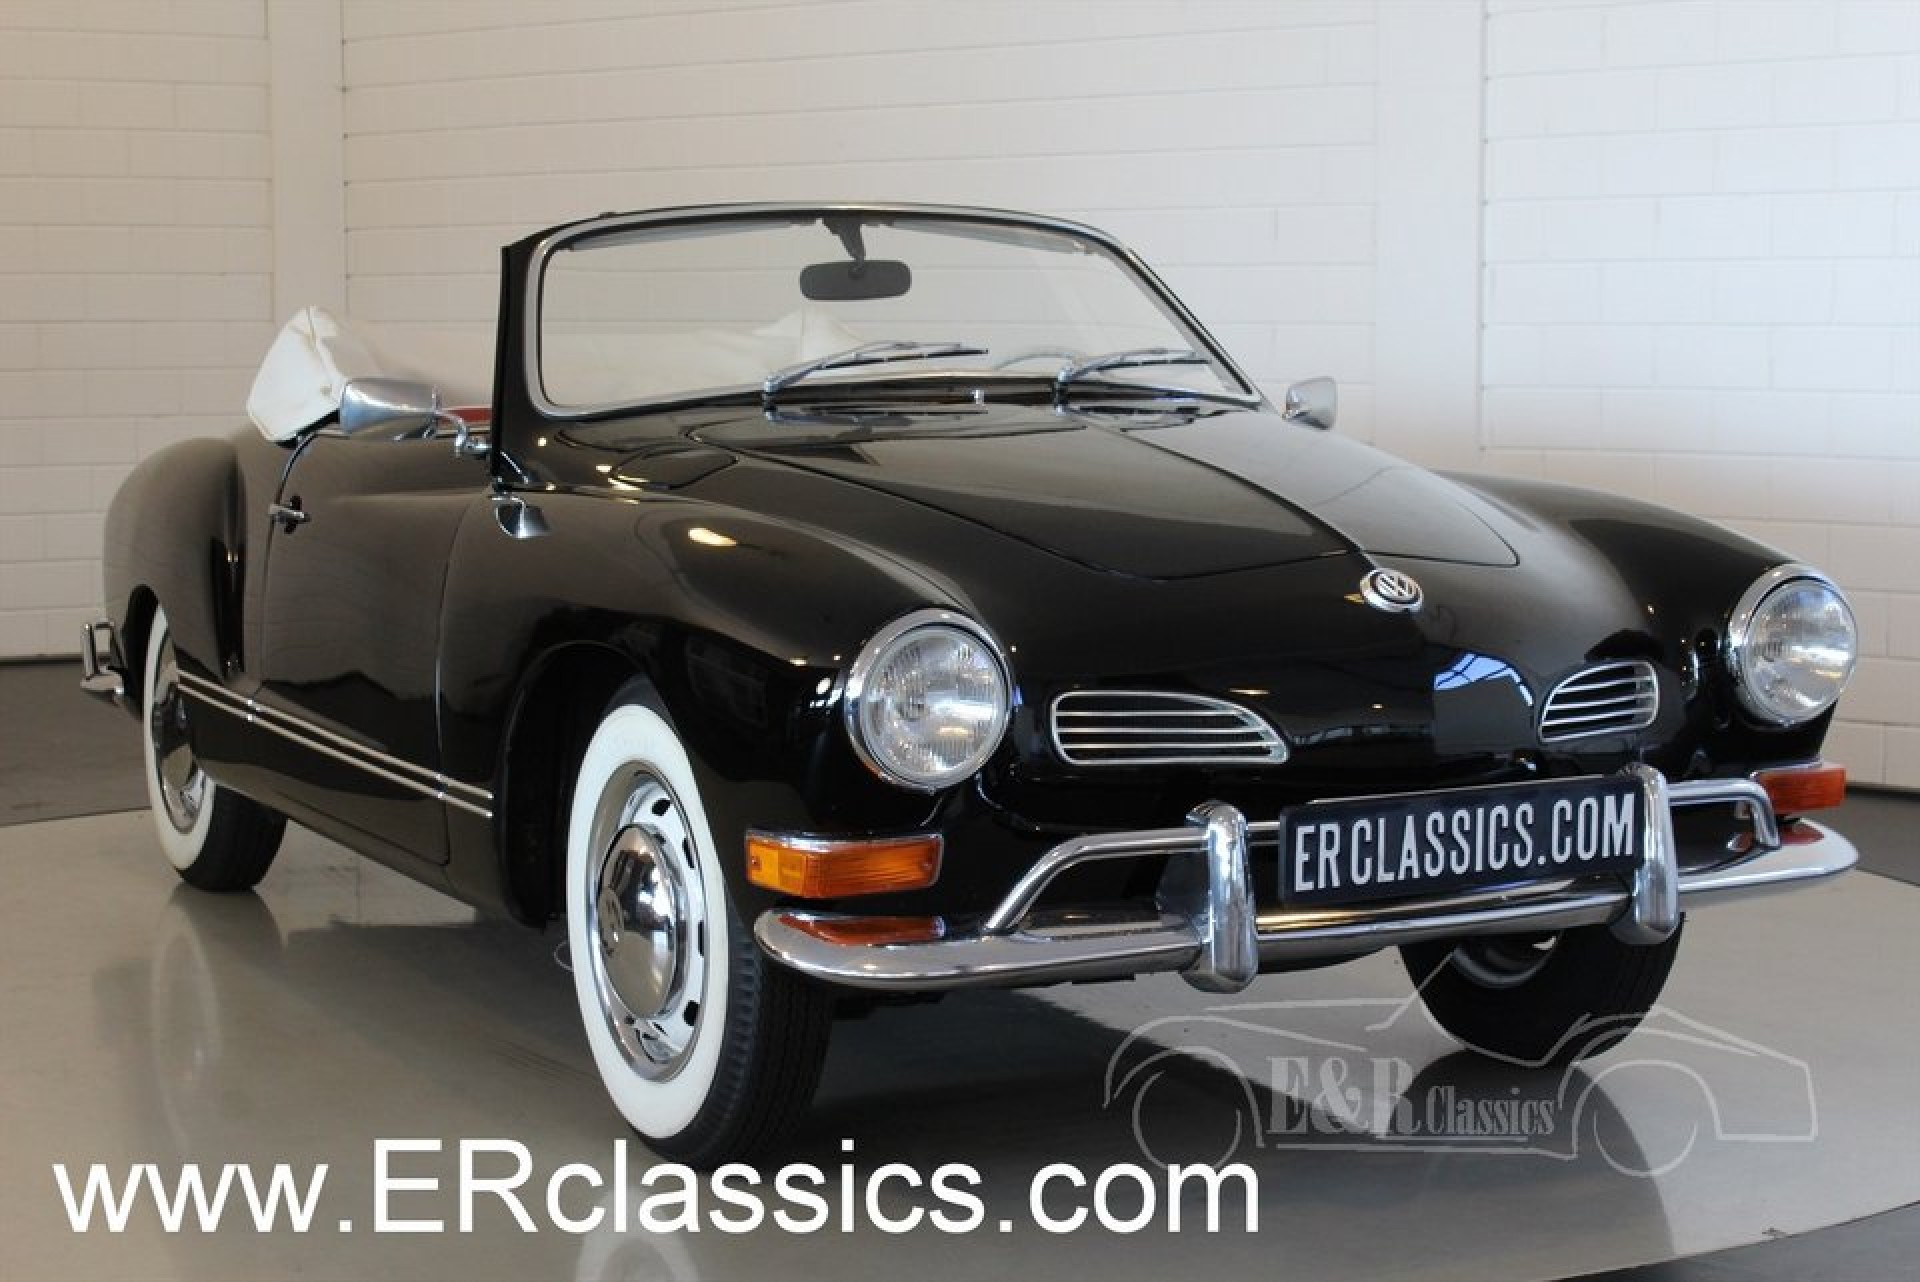 volkswagen karmann ghia 1971 vendre erclassics. Black Bedroom Furniture Sets. Home Design Ideas